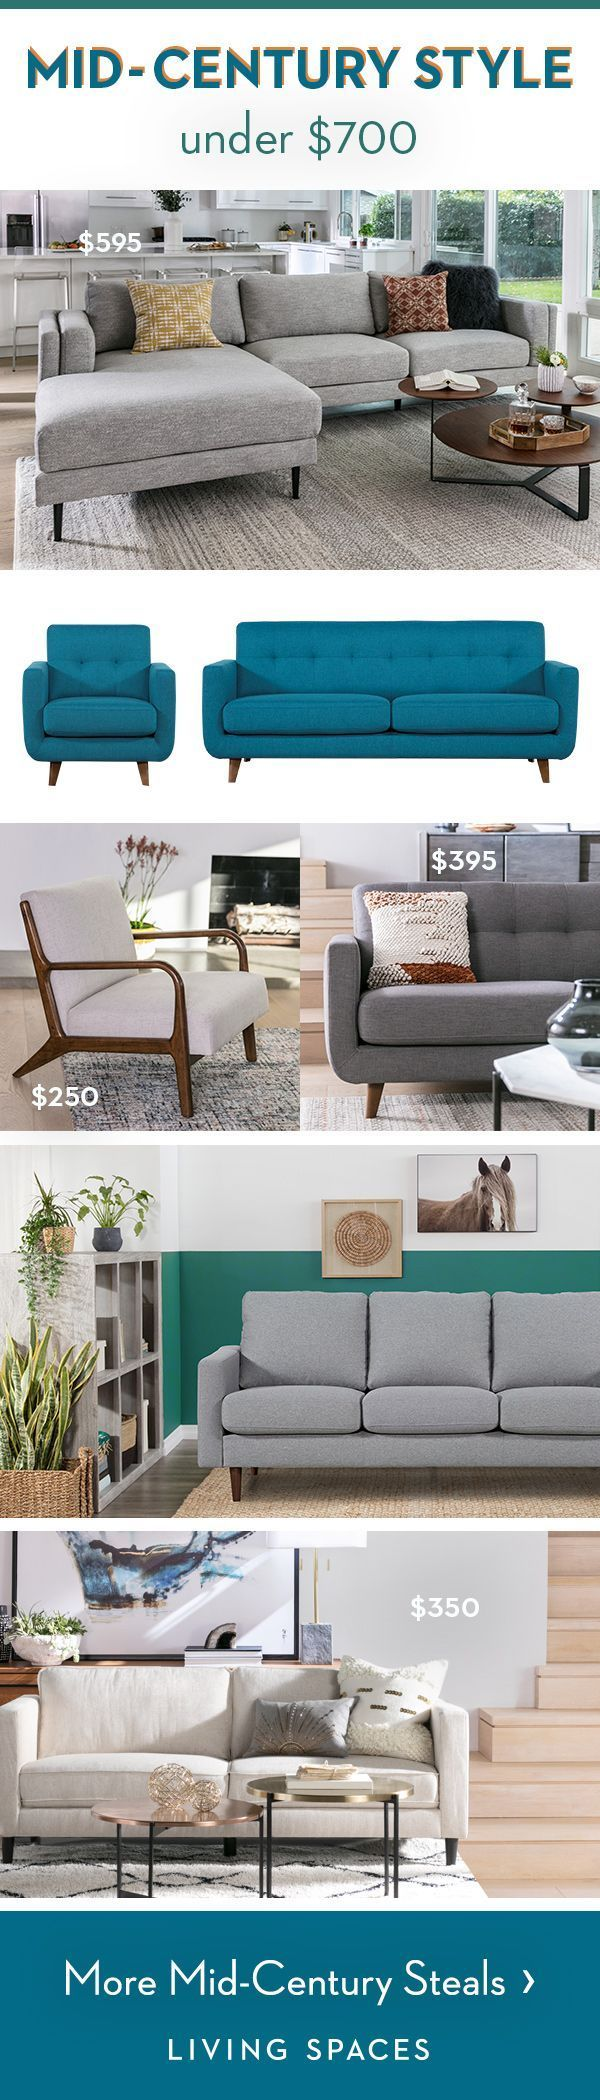 Midcentury modern furniture get a chic retro look for way less